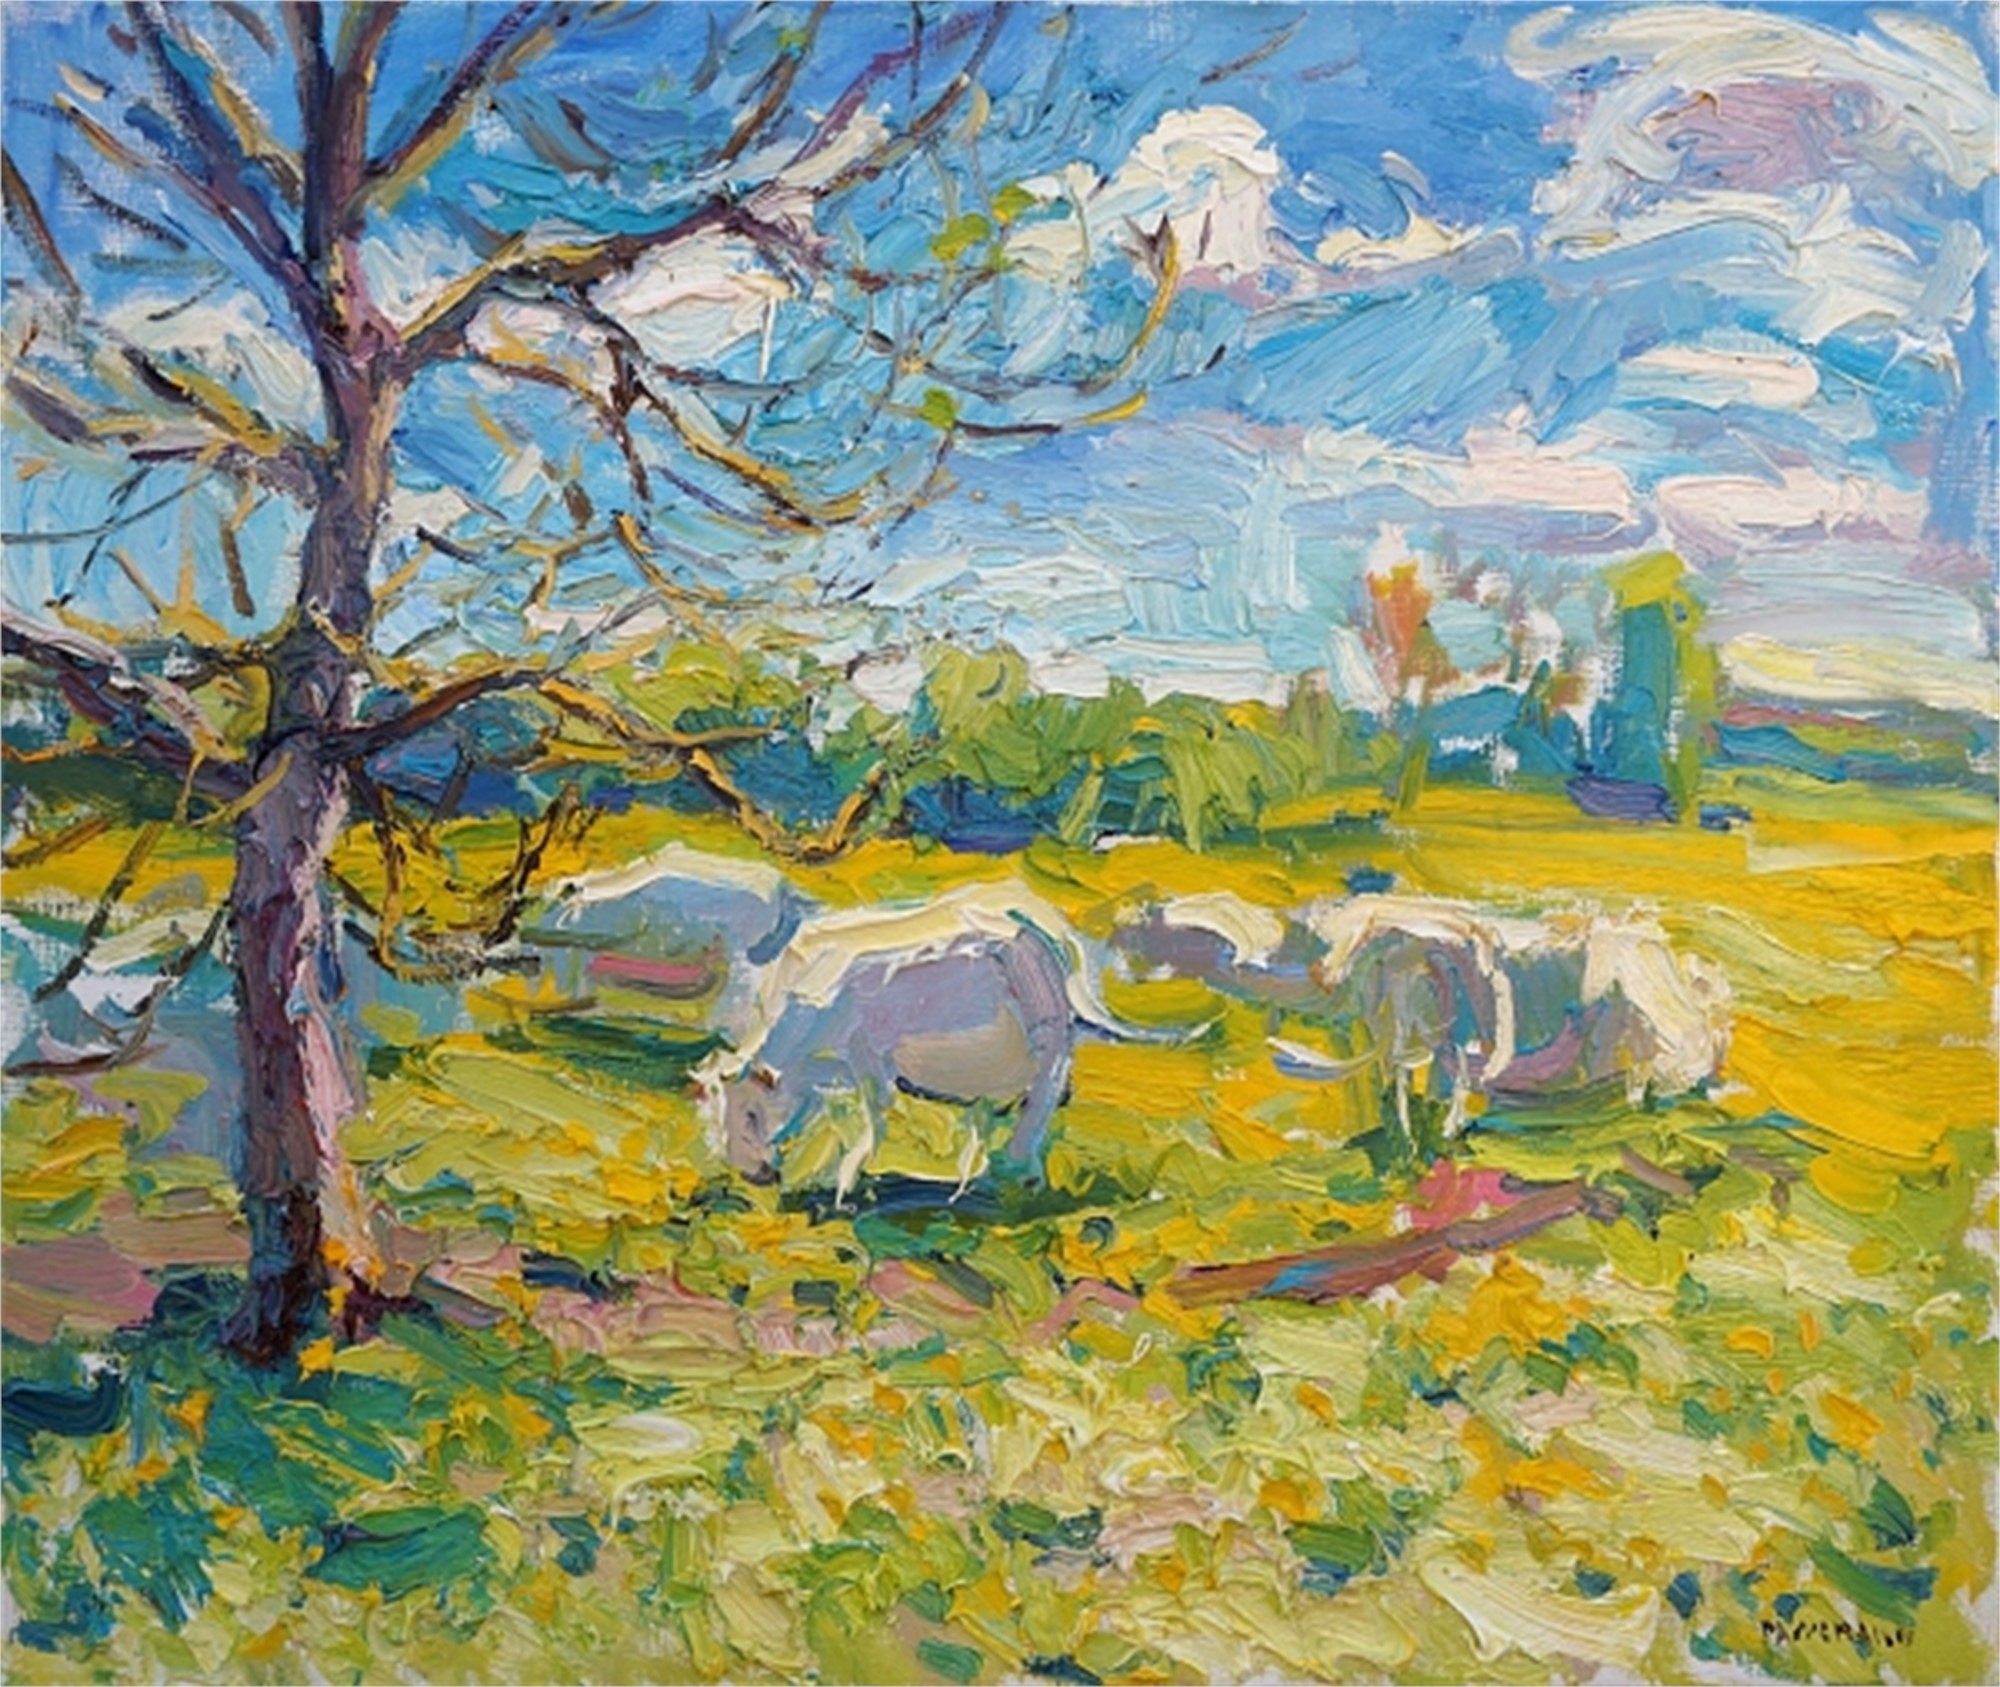 Cows in the Sun by Antonin Passemard